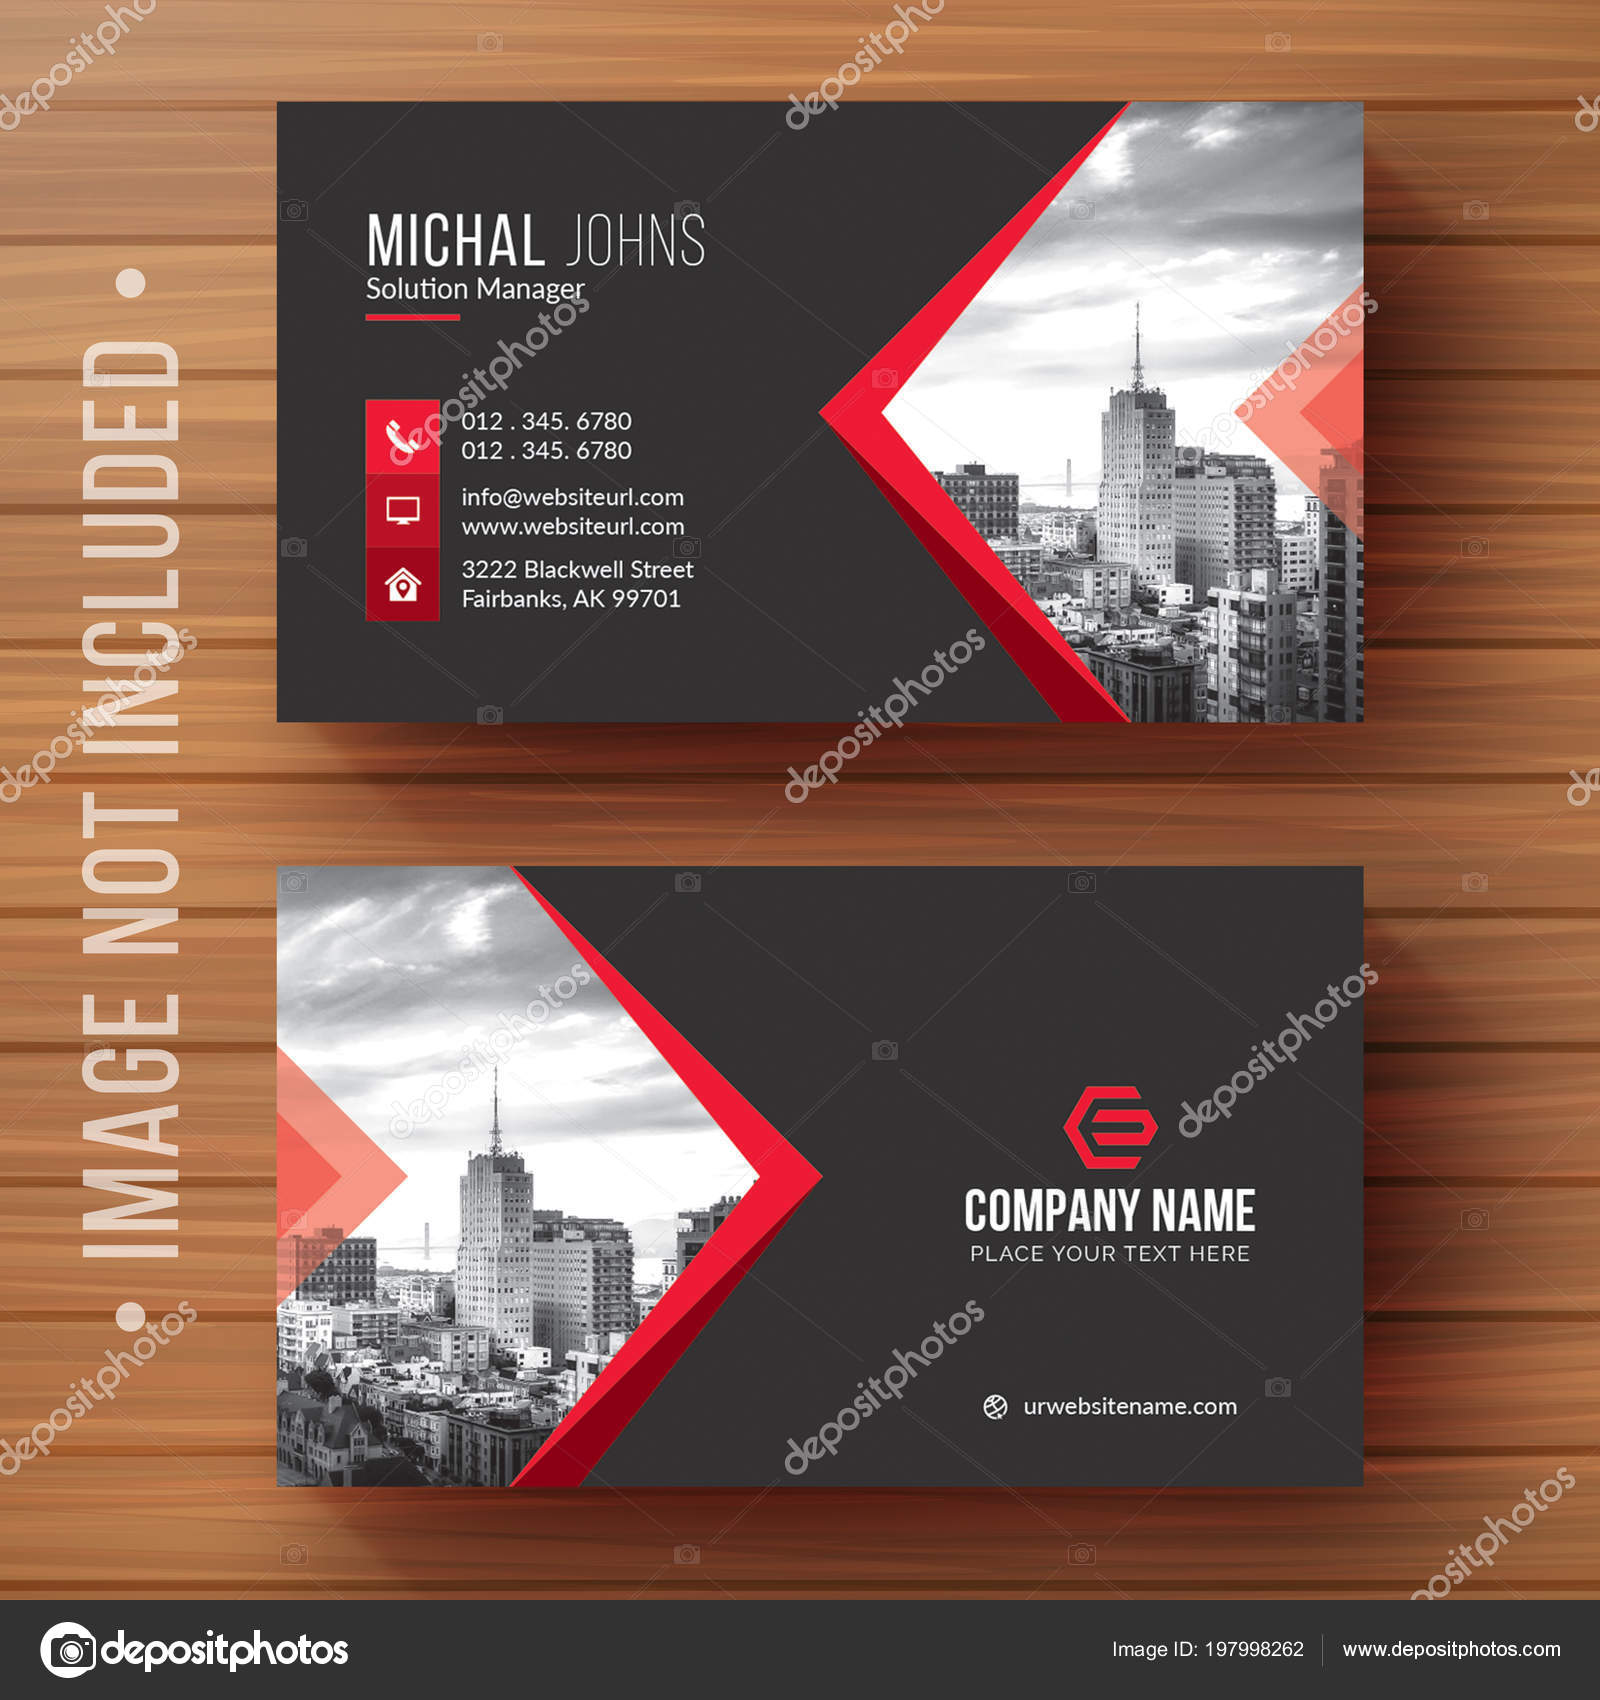 Vector Design Modern Creative Clean Business Card Template